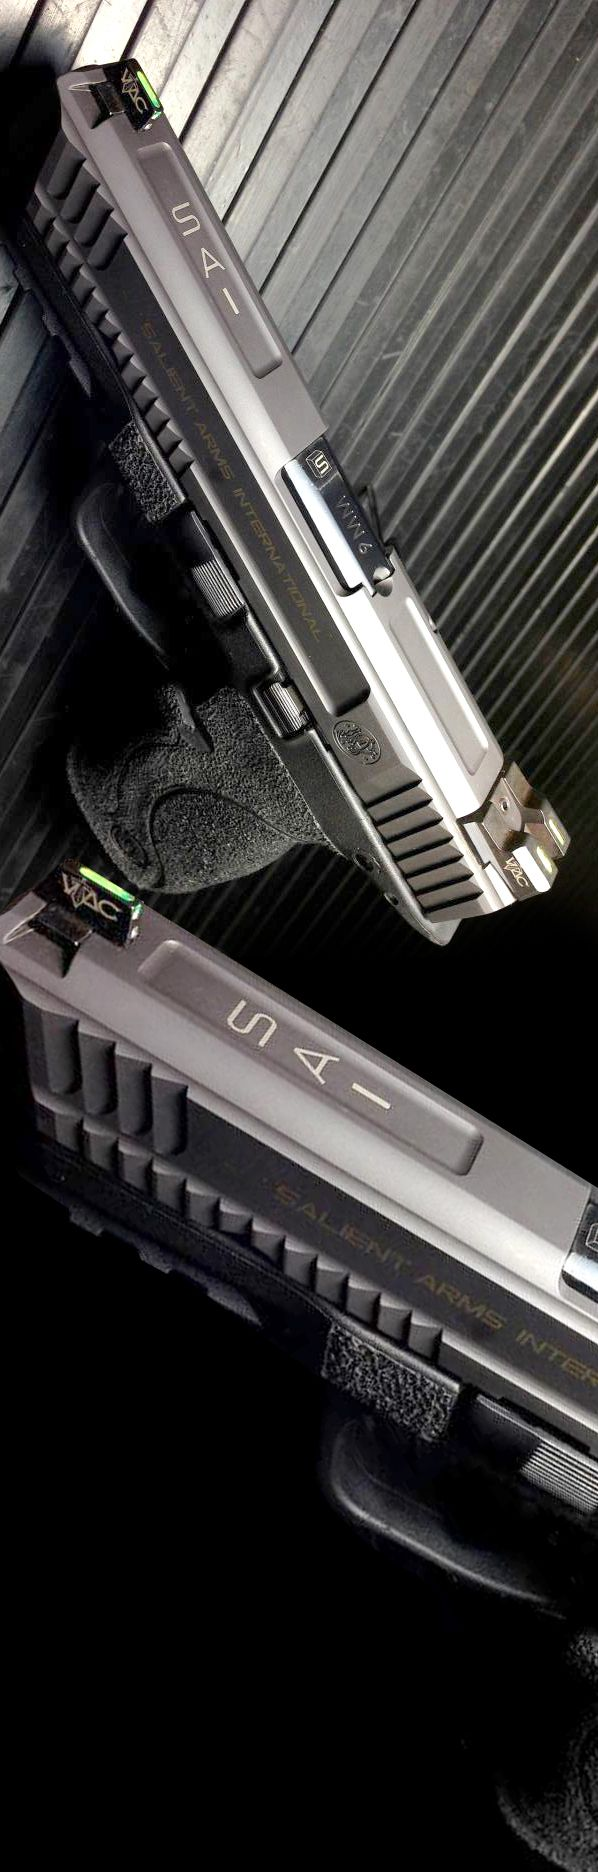 Salient Arms International M Tier Two VTAC edition specifically made for VTAC/Kyle Lamb.